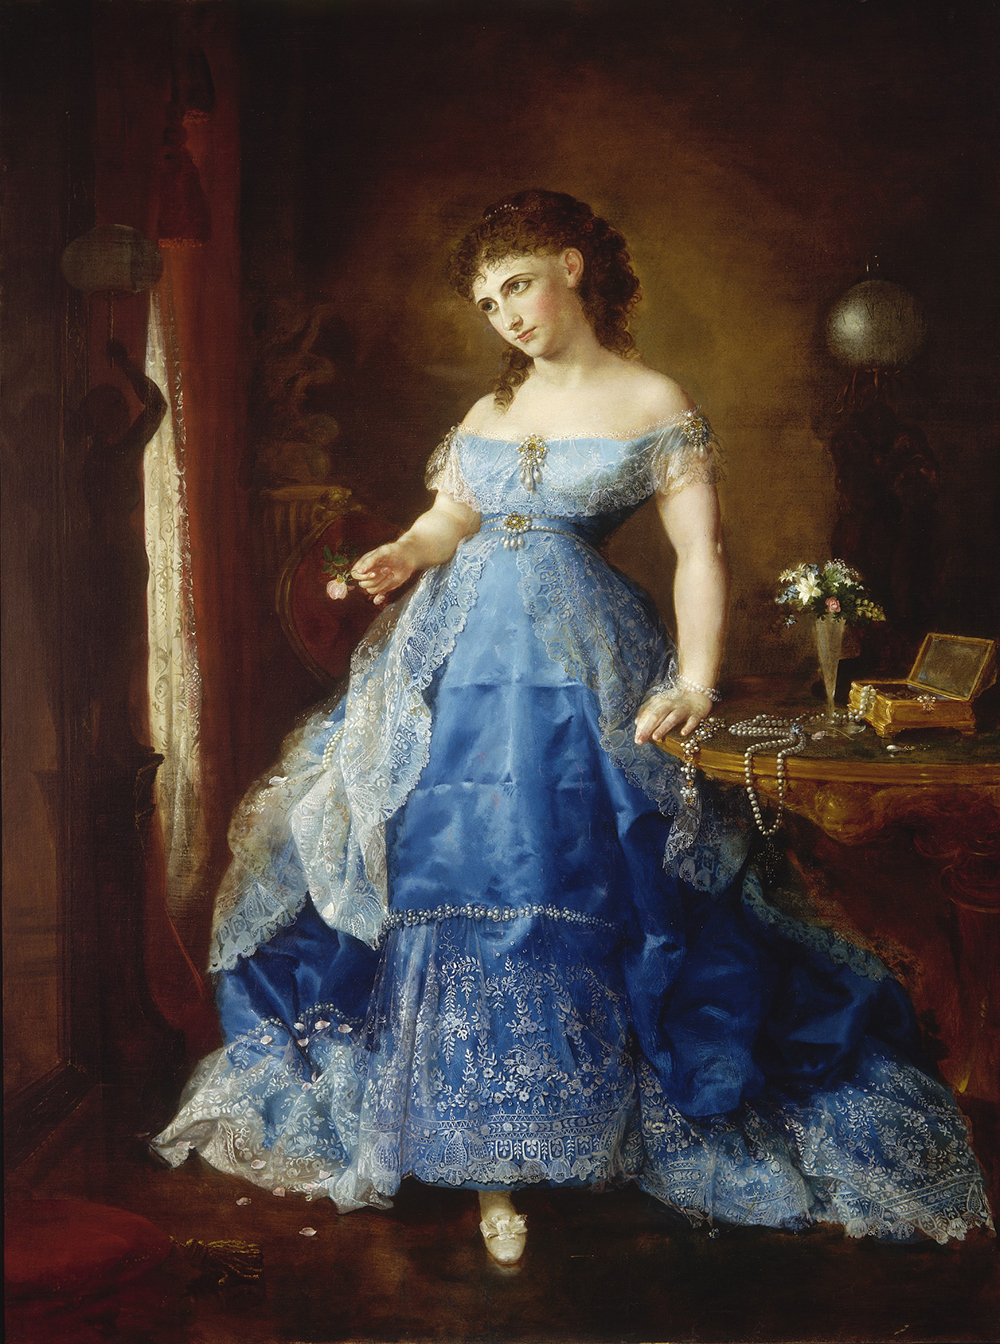 We Both Must Fade (Mrs. Fithian), by Lilly Martin Spencer, 1869. Smithsonian American Art Museum.